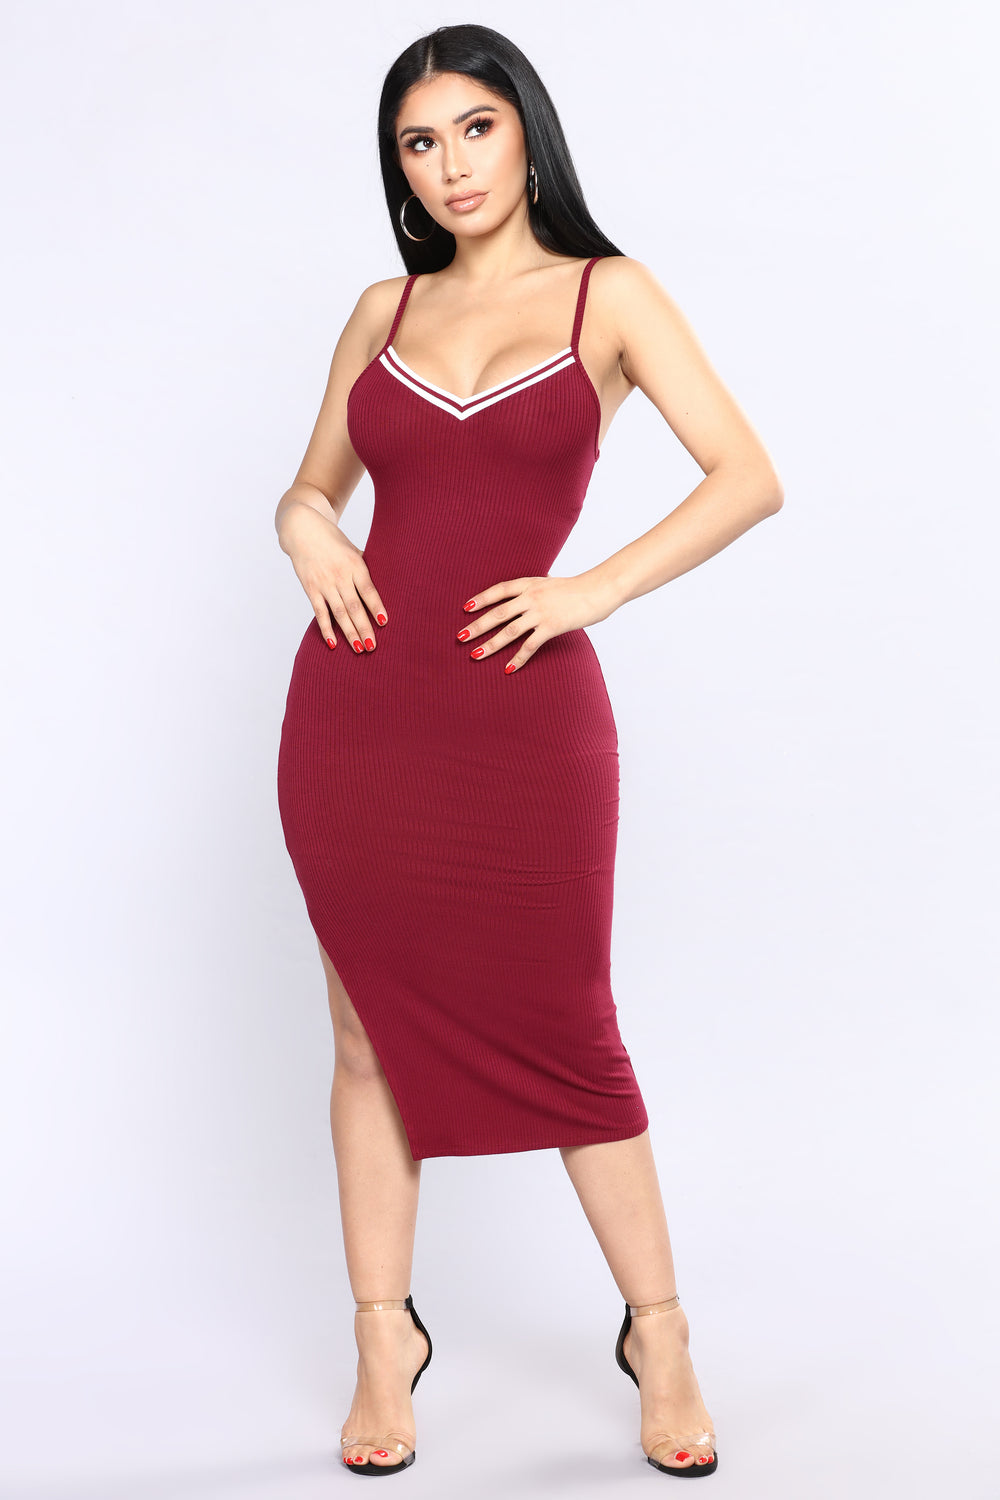 Game 7 Ribbed Dress - Wine